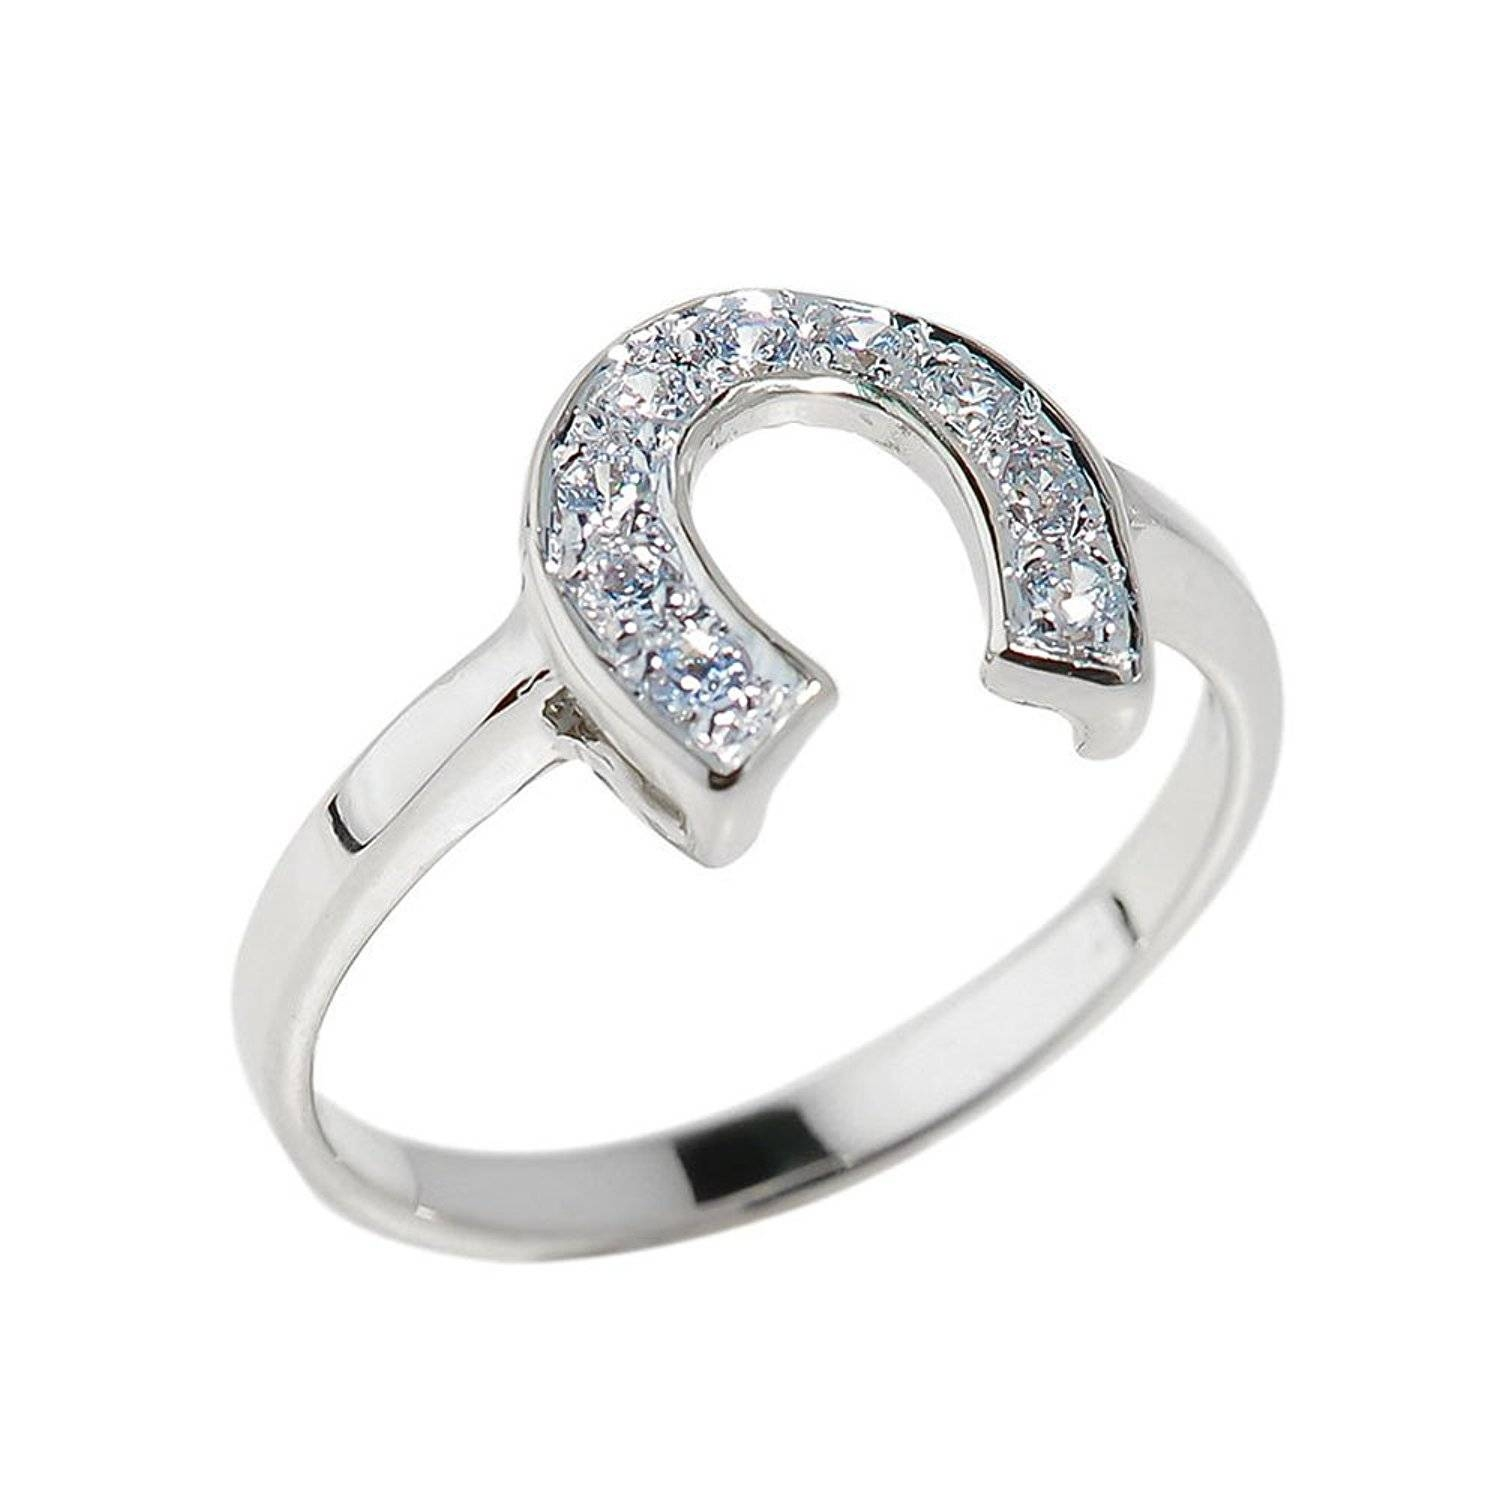 Wedding Rings : Engagement Rings For Horse Lovers Septum Horseshoe Throughout Horseshoe Diamond Engagement Rings (View 7 of 15)